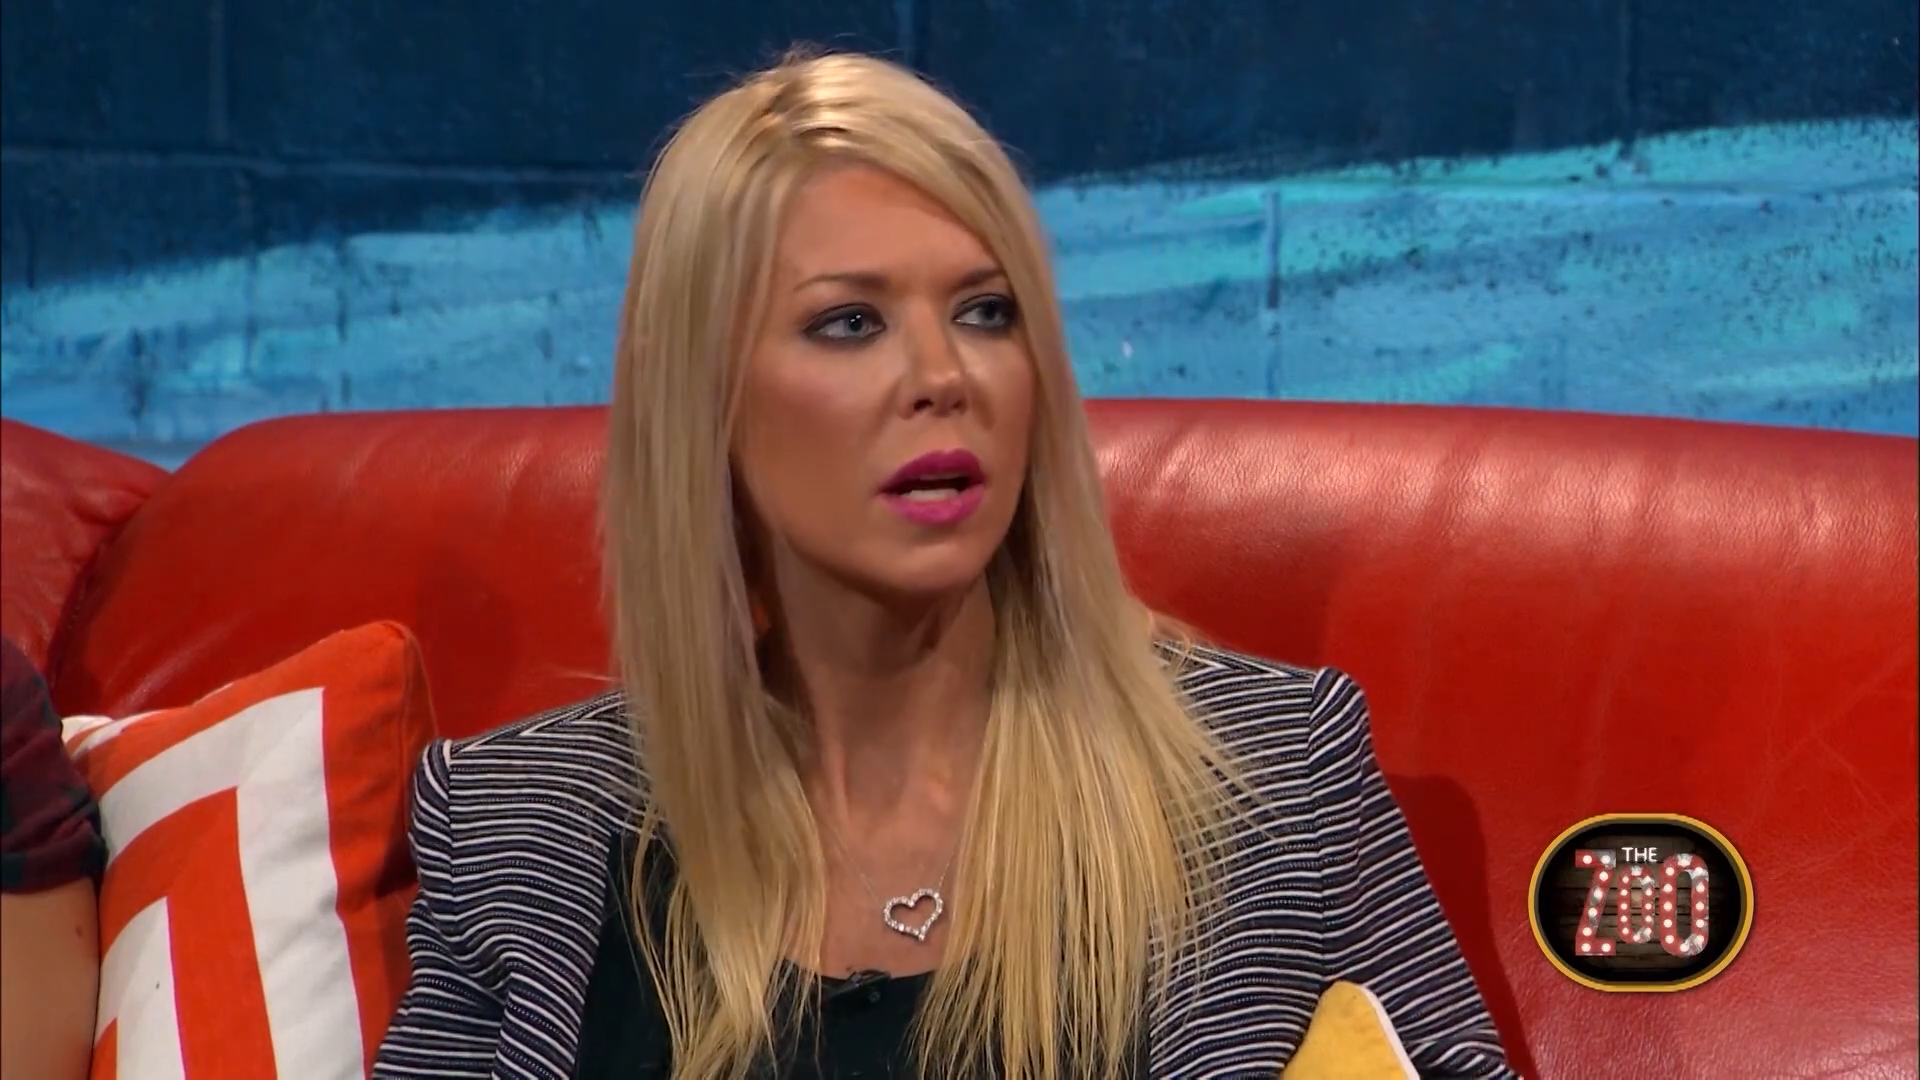 Tara Reid on being older and wiser